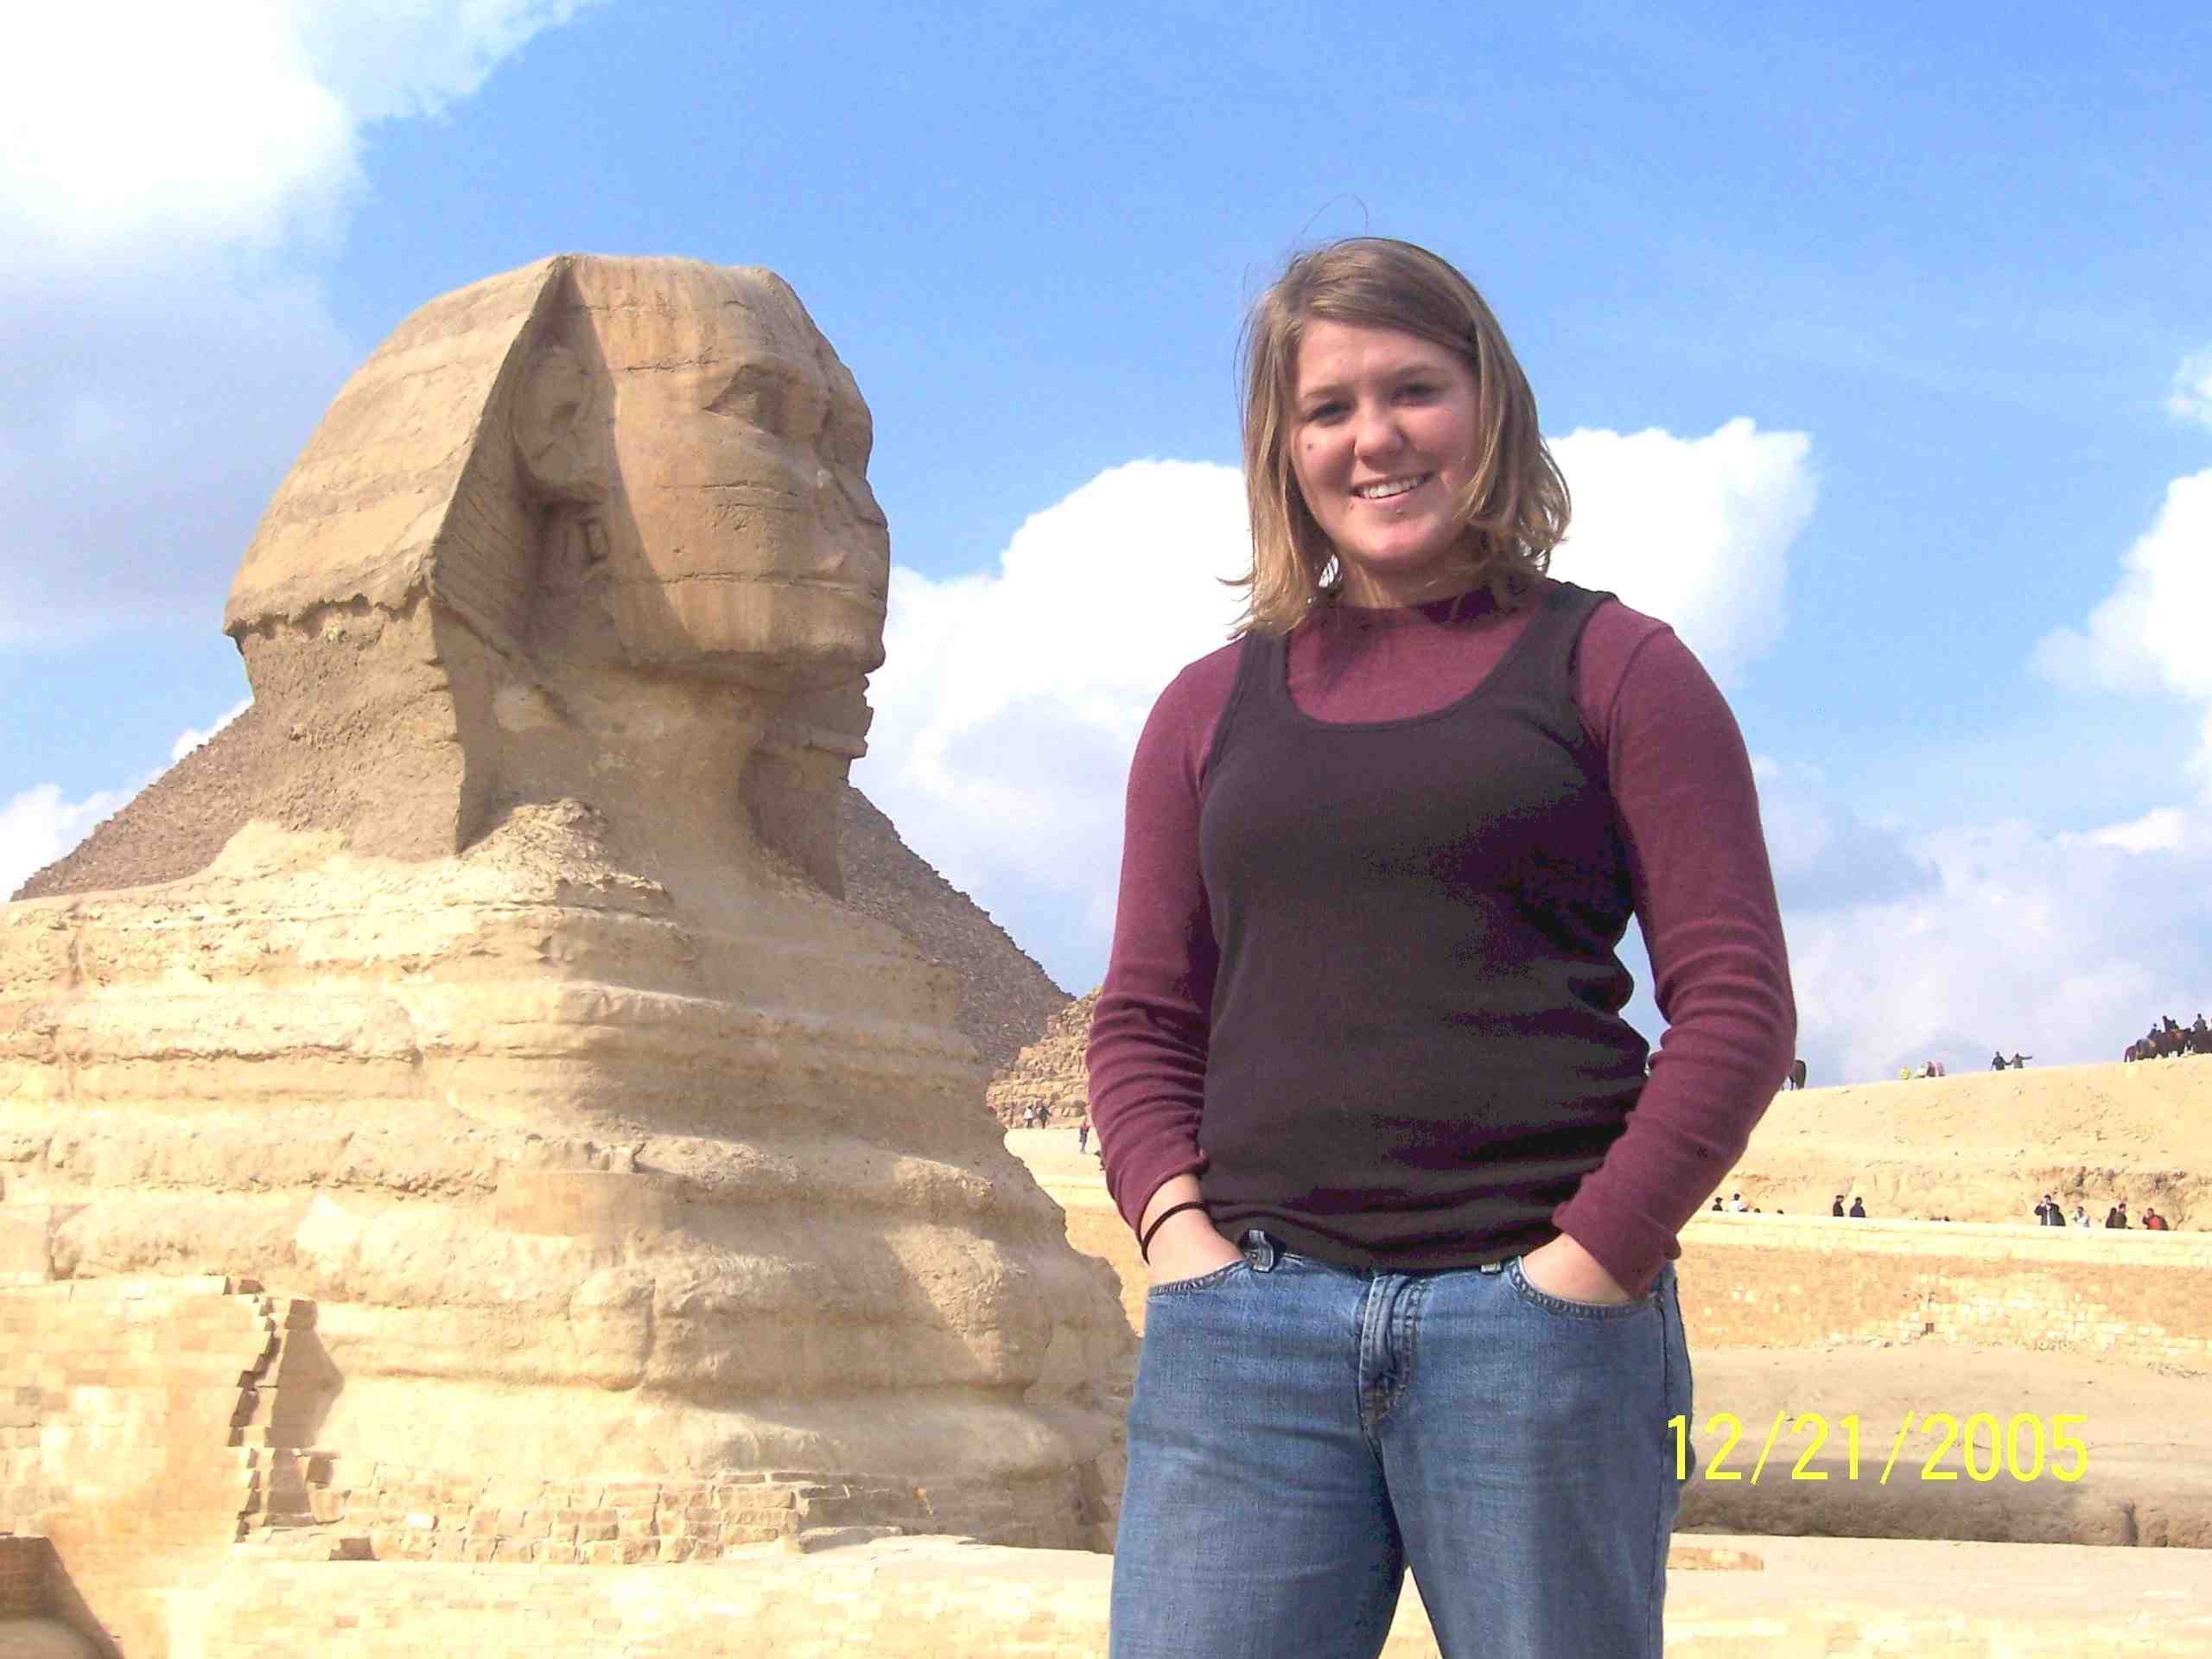 My Granddaughter Jenny at the Sphinx in Dec. 2005